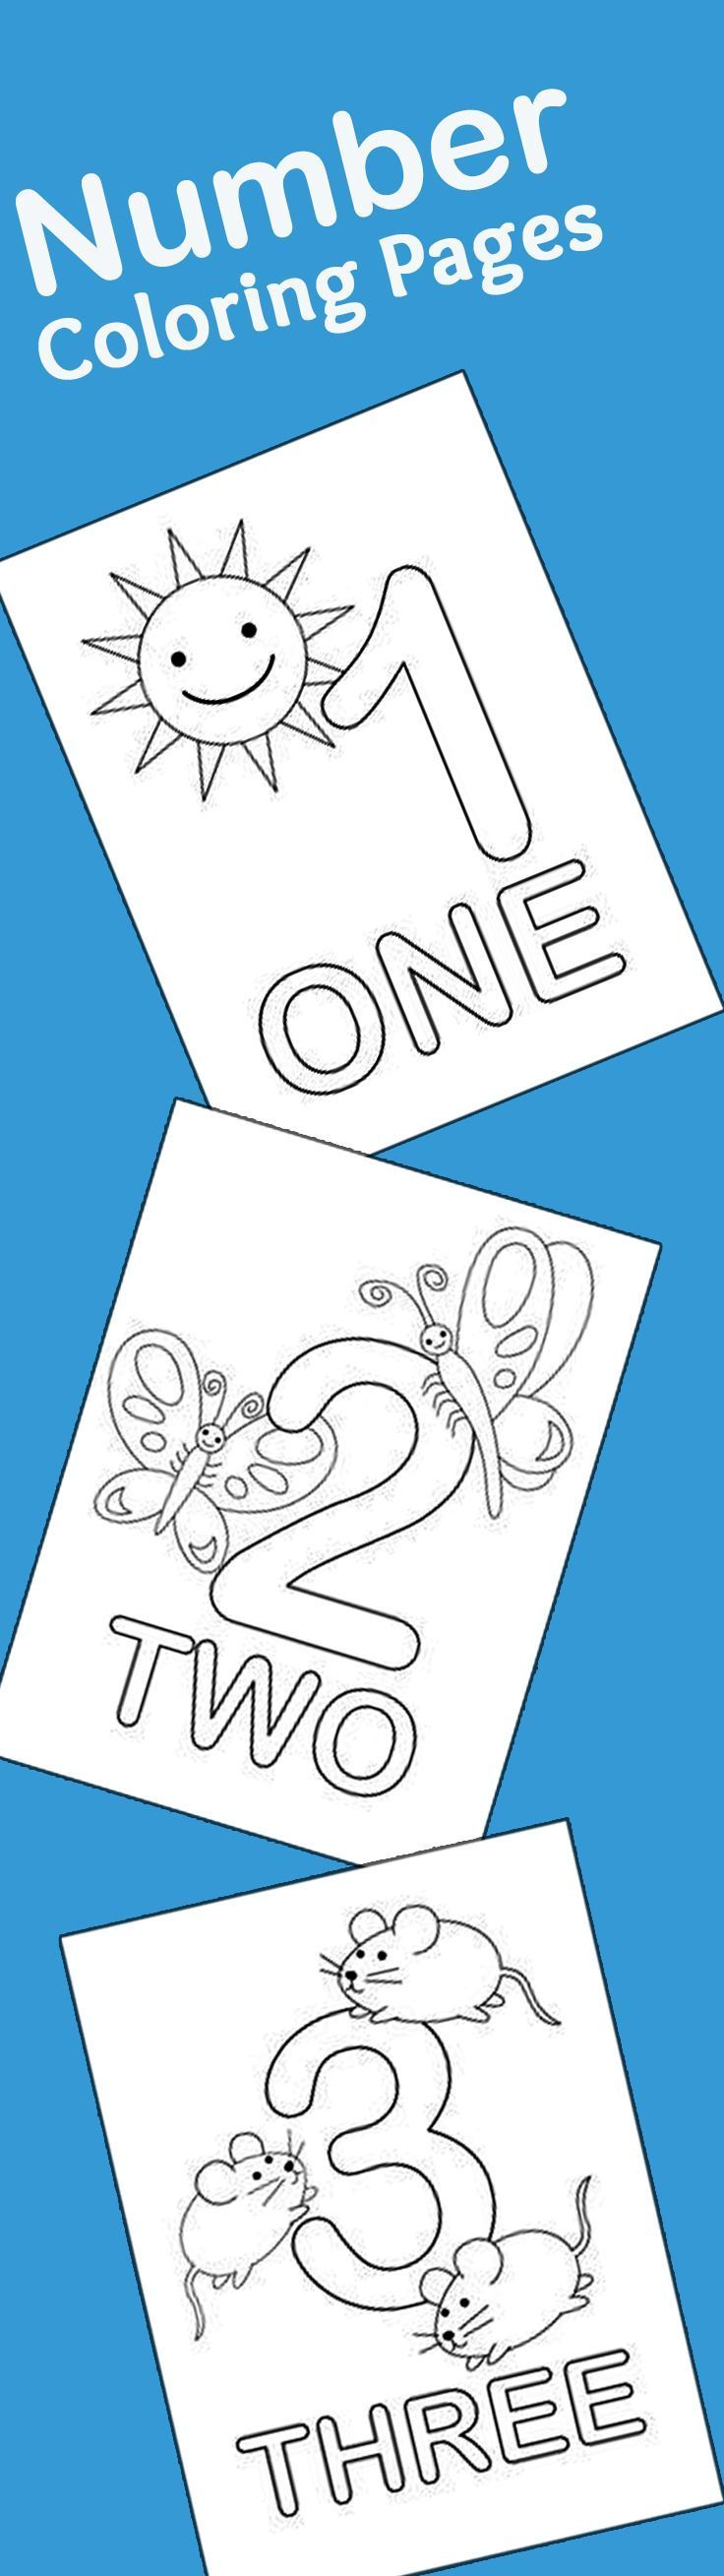 L sound coloring pages - 10 Easy To Learn Number Coloring Pages For Your Little Ones This Is A List